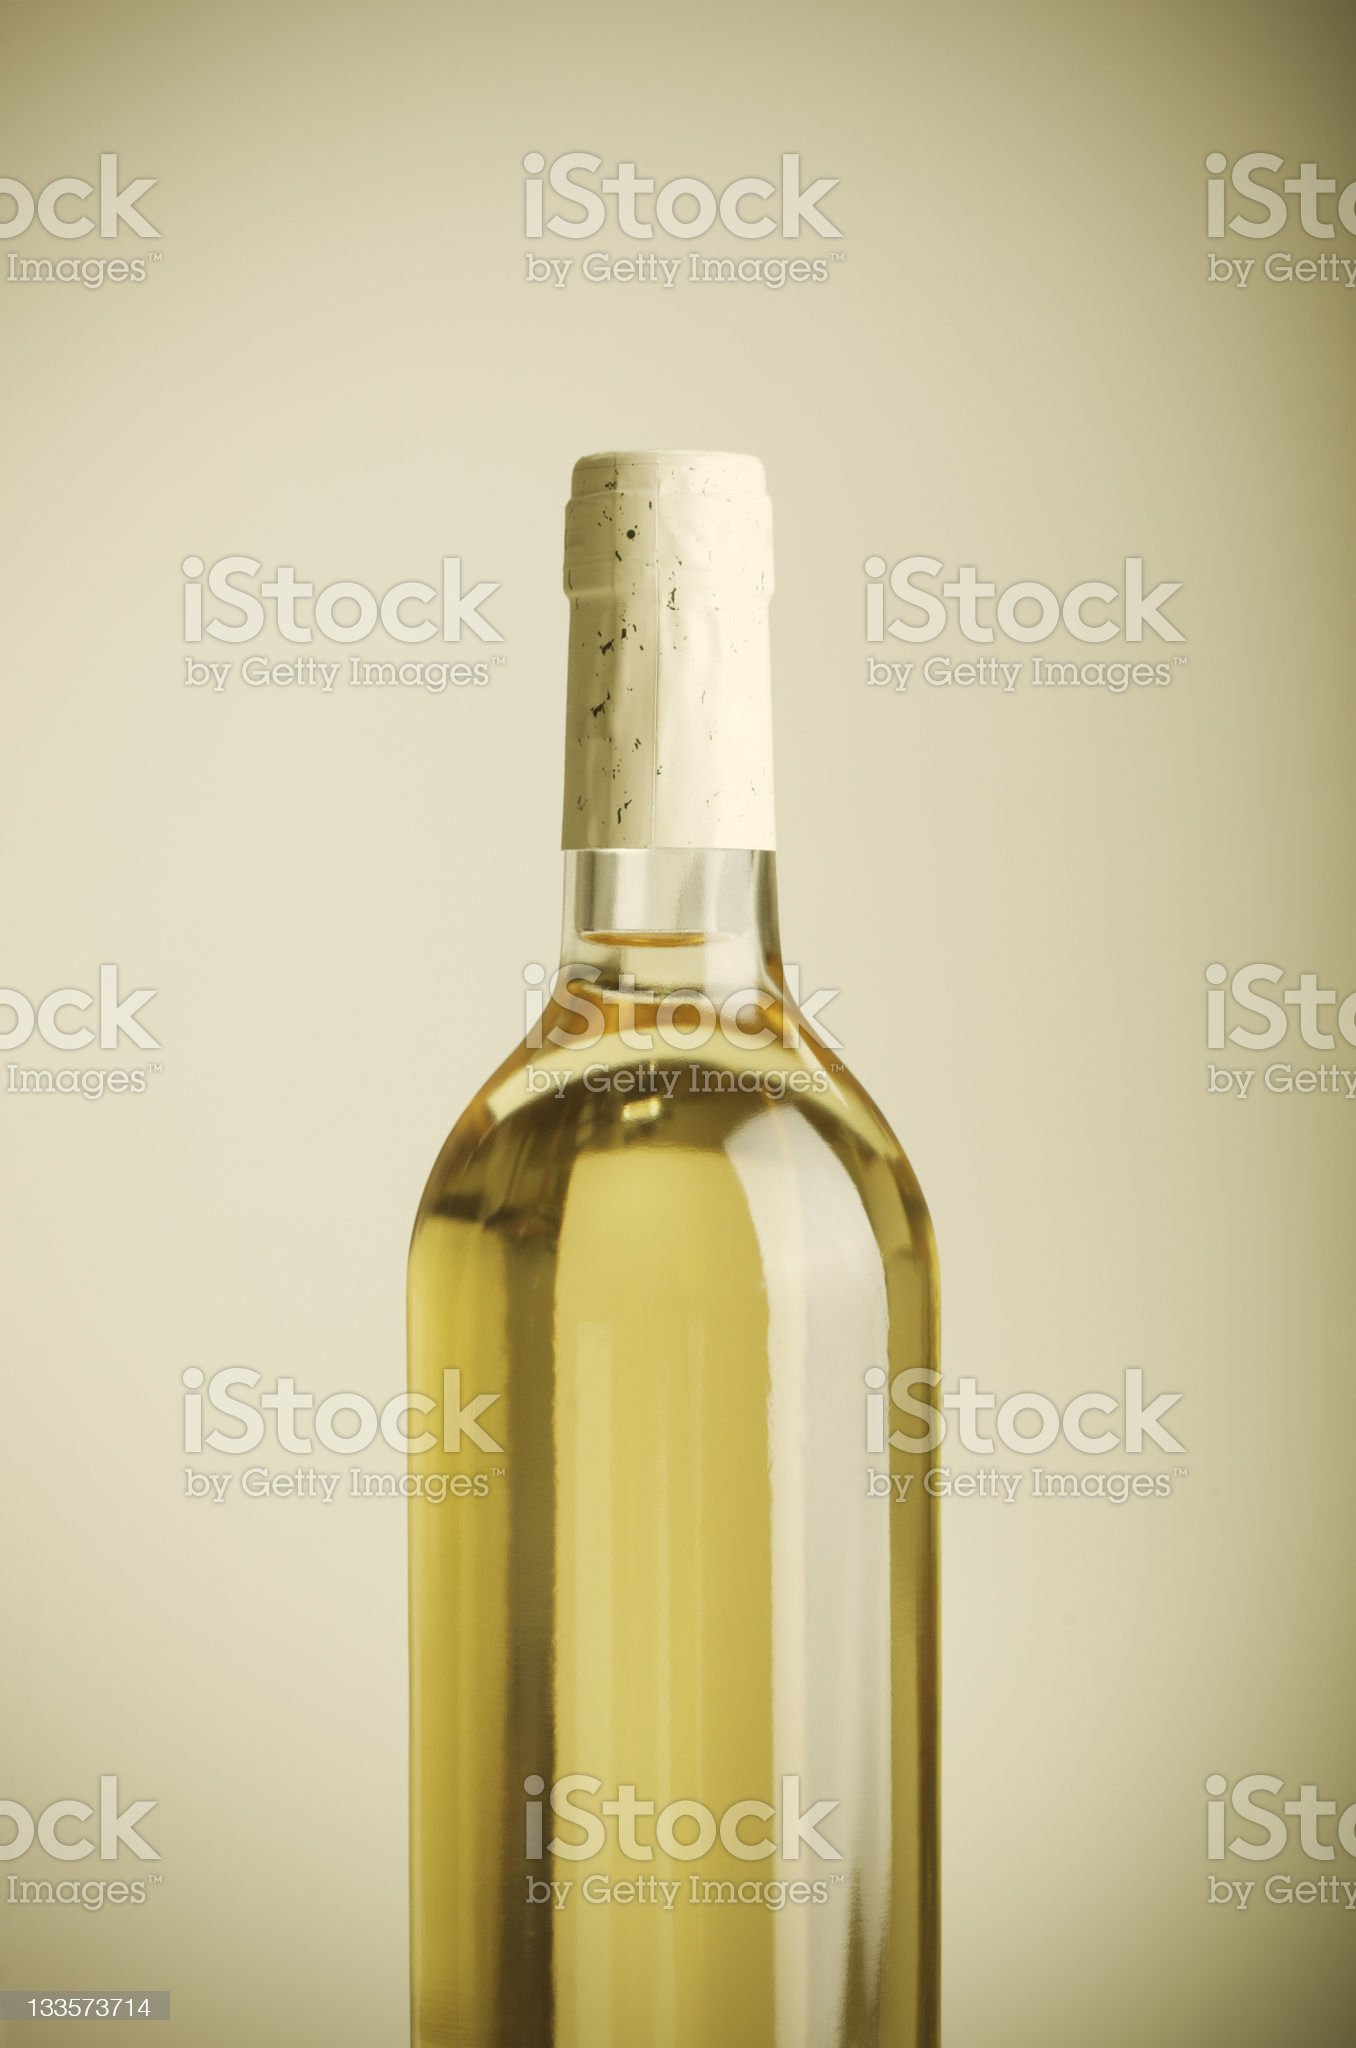 White wine bottle on beige background _ vertical royalty-free stock photo